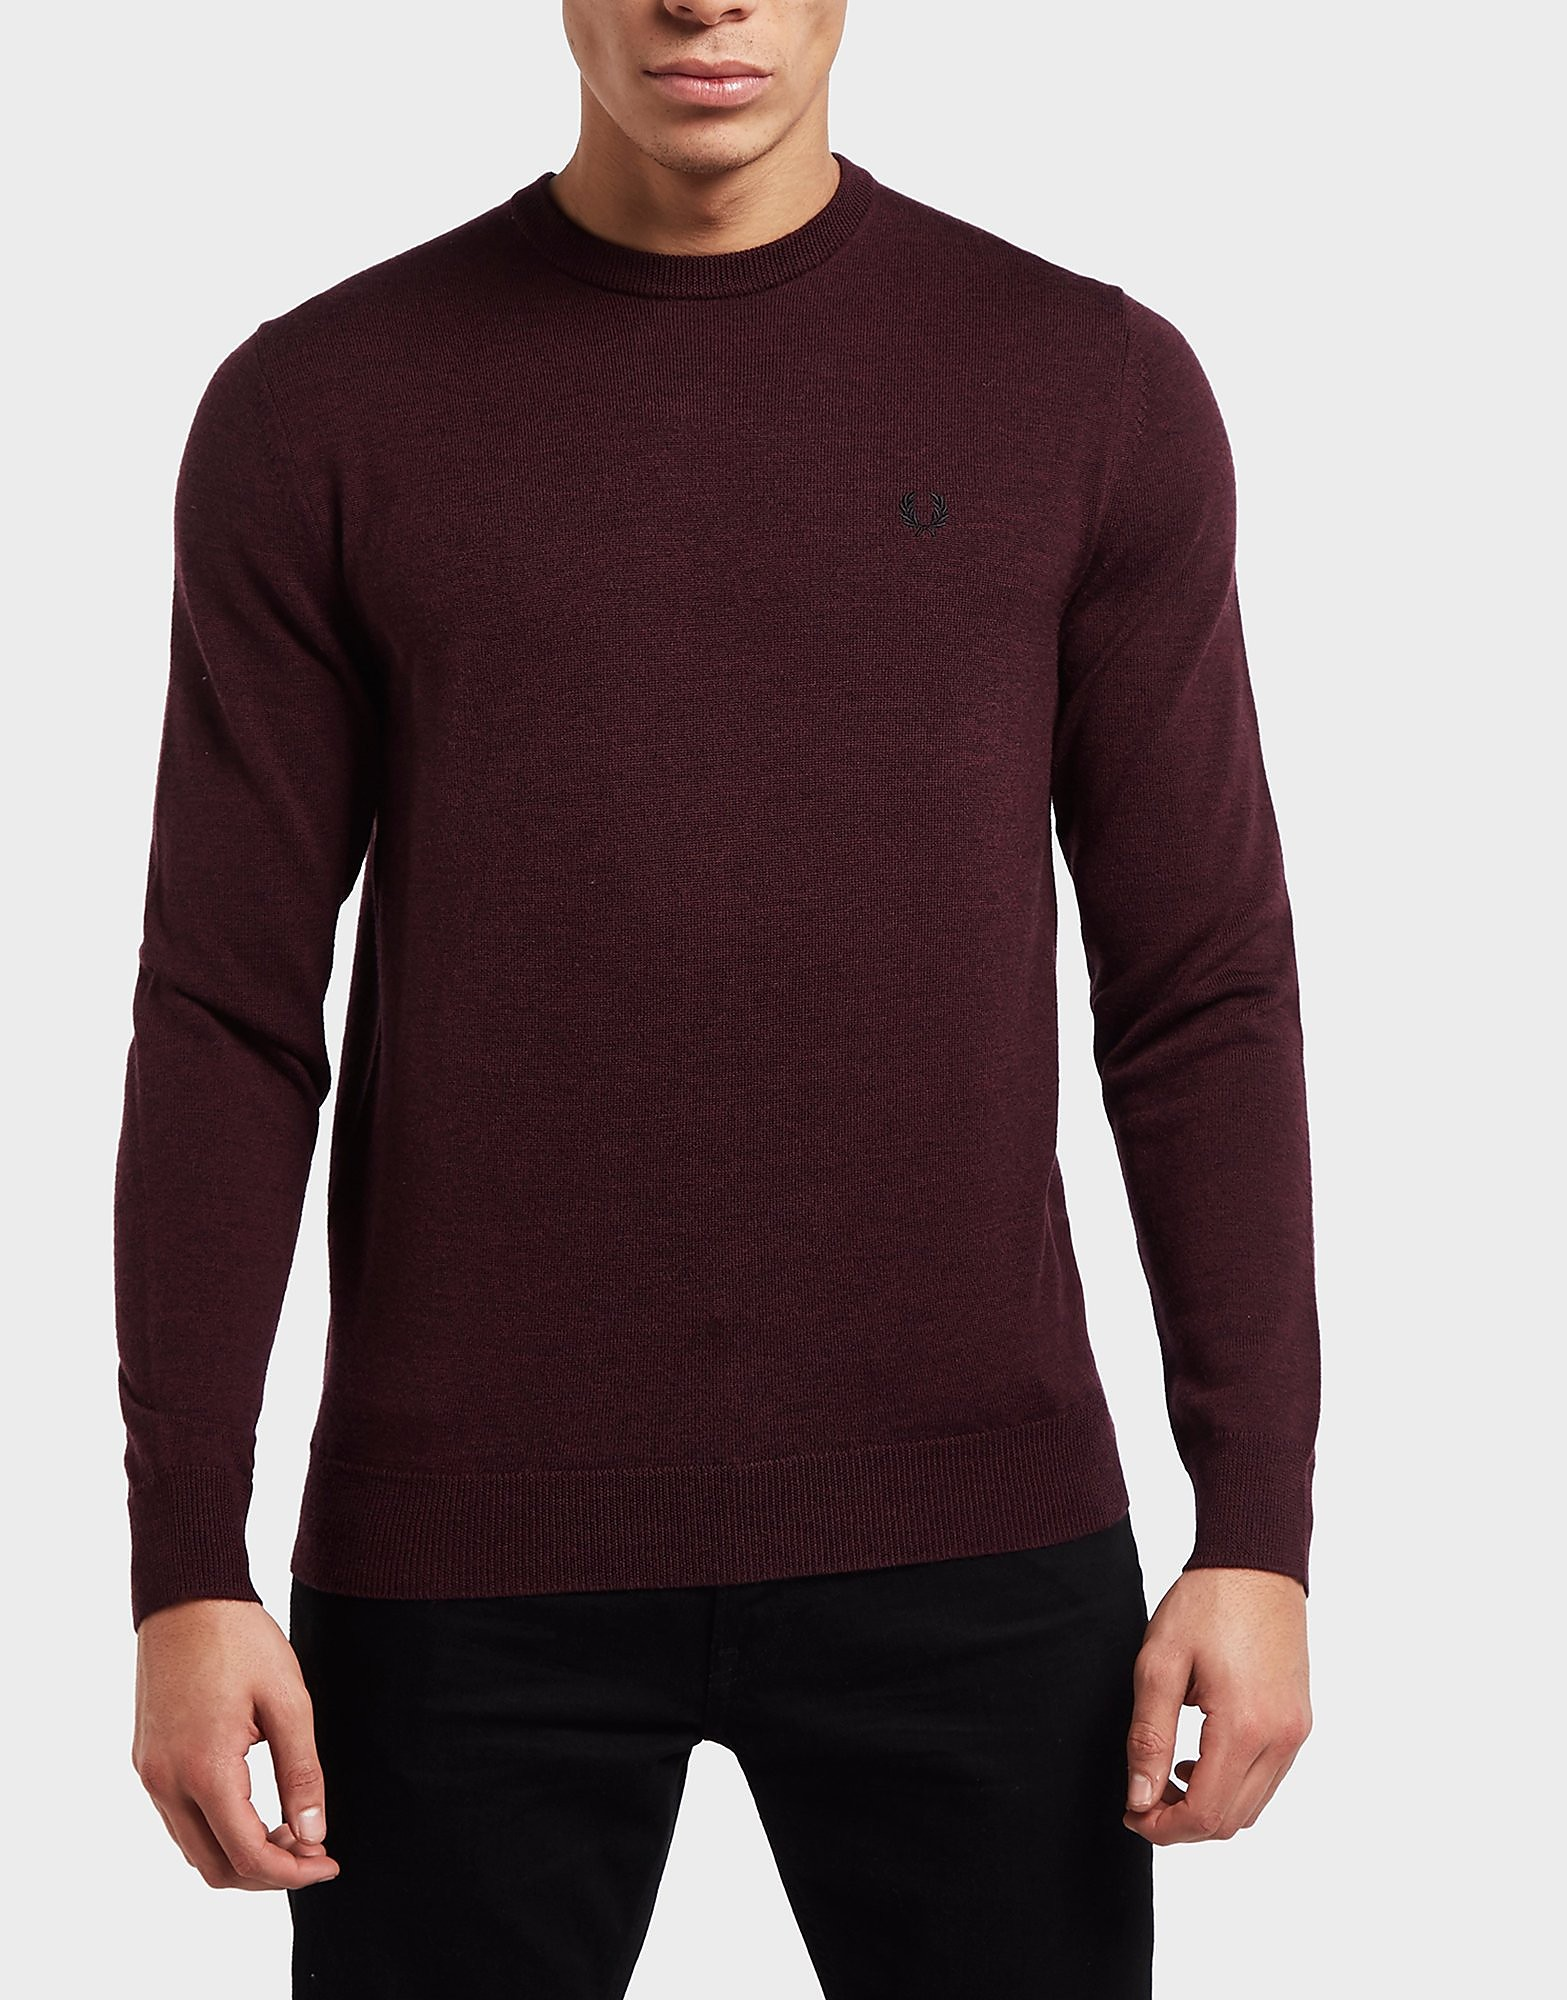 Fred Perry Merino Knitted Jumper